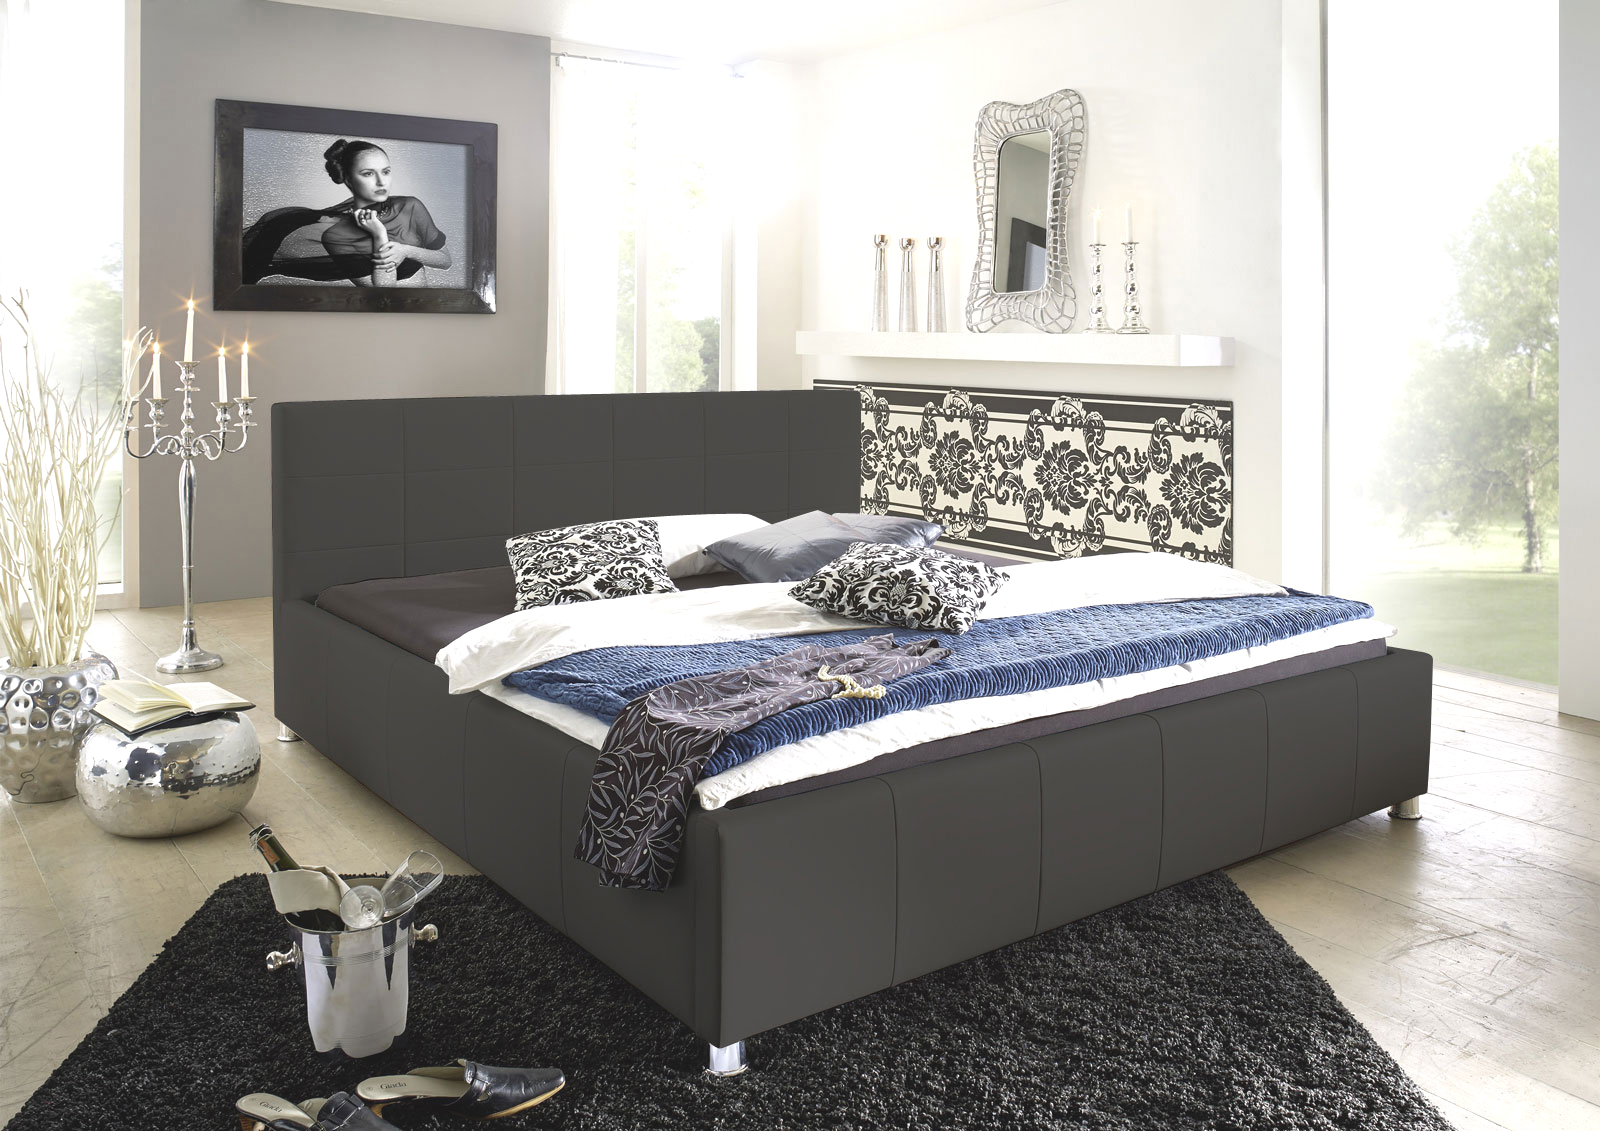 sam design bett 140 x 200 cm grau kira auf lager. Black Bedroom Furniture Sets. Home Design Ideas